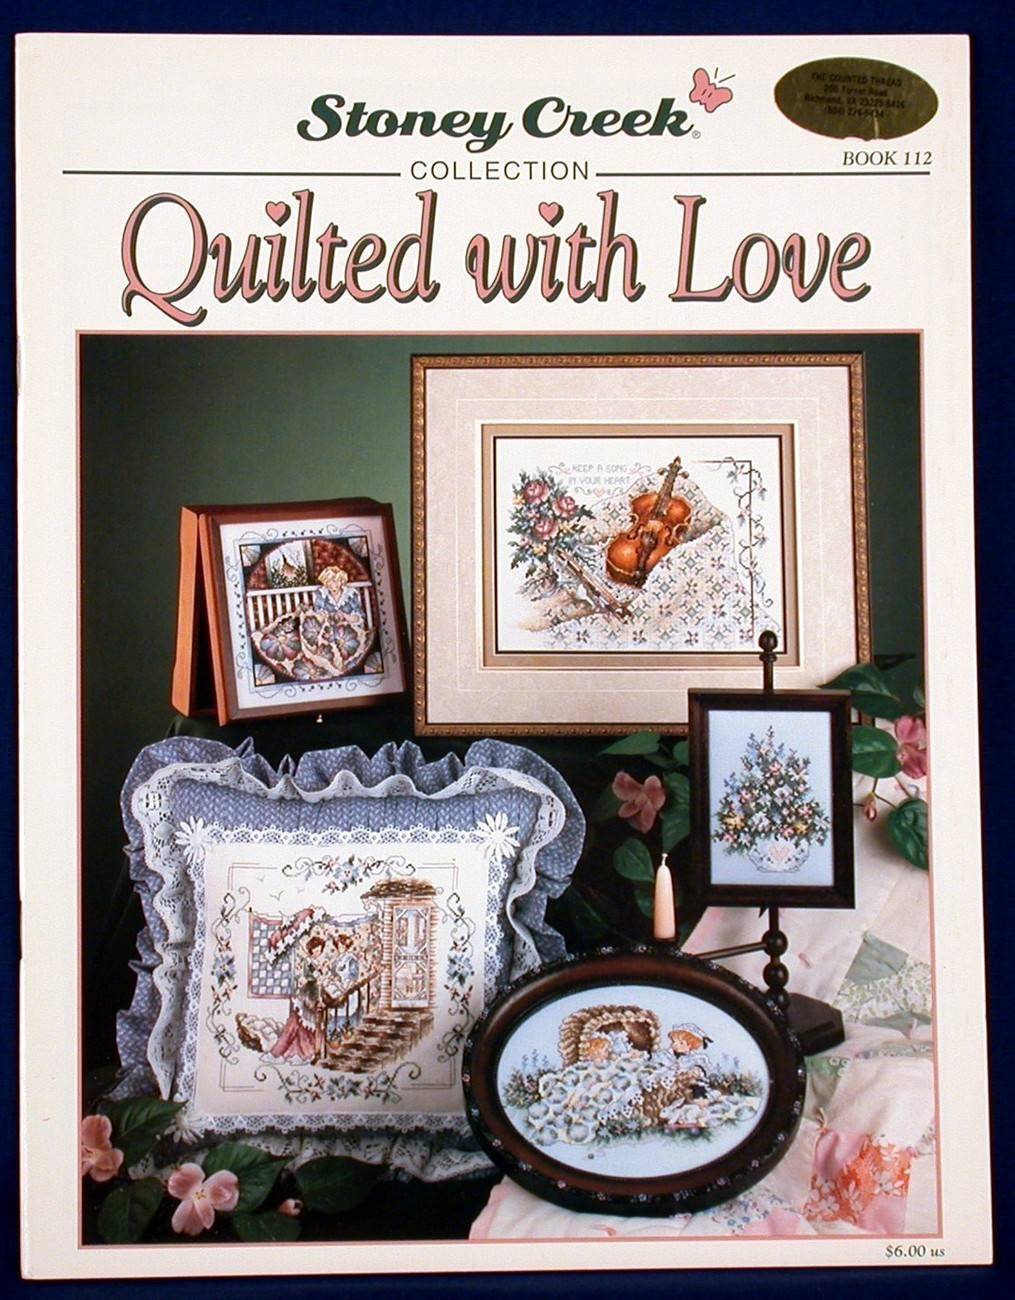 Quilted with Love Stoney Creek Cross Stitch Patterns Book 112 New - $5.00